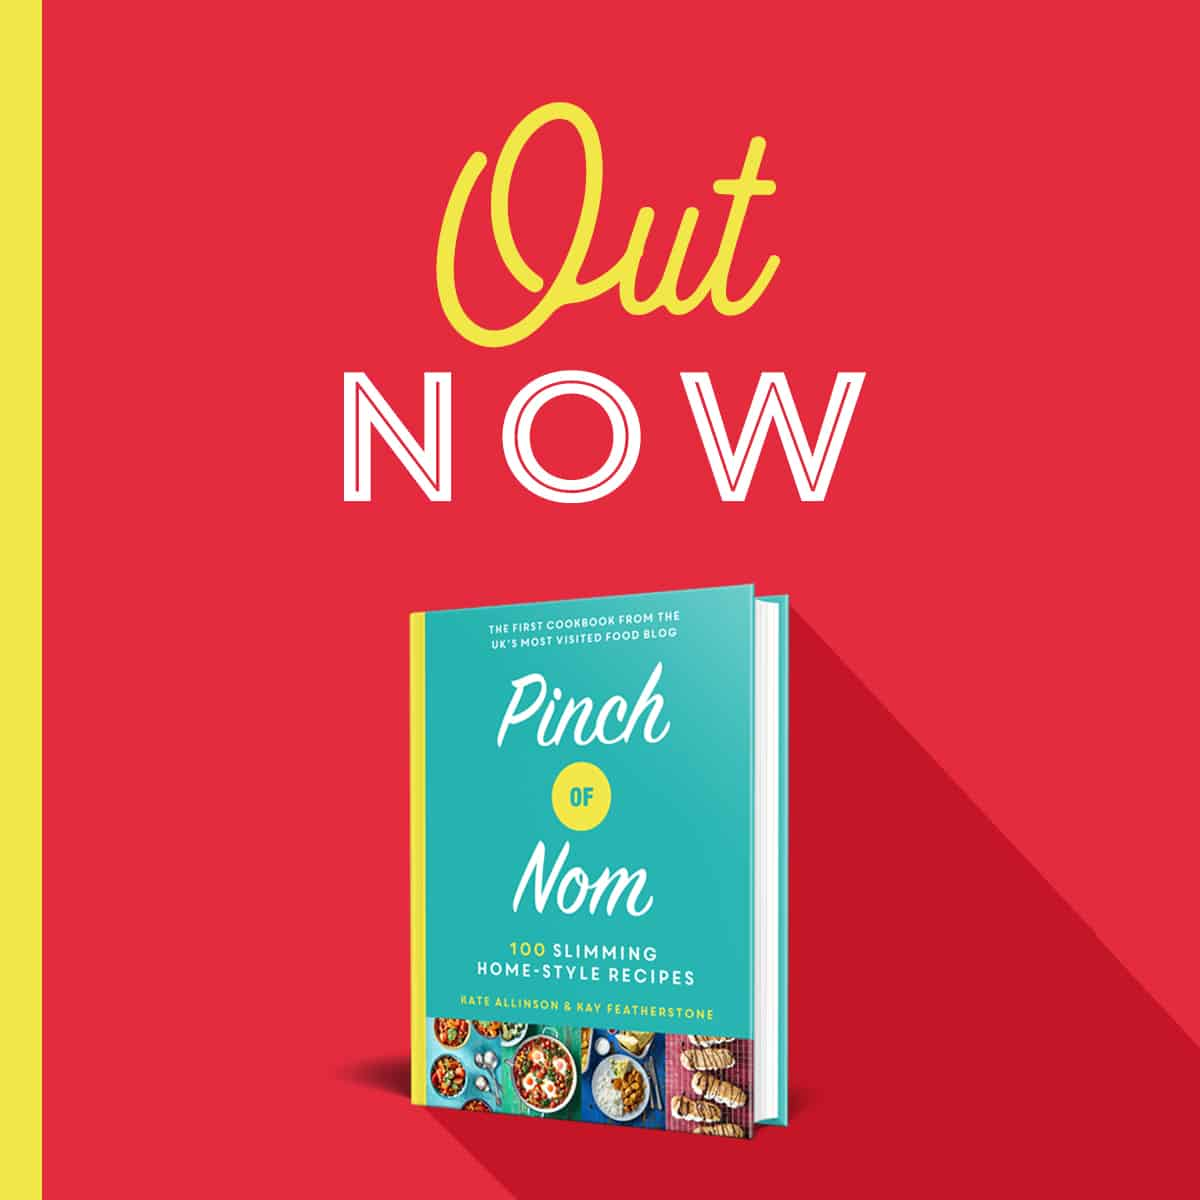 Pinch Of Nom Cookbook - preorder